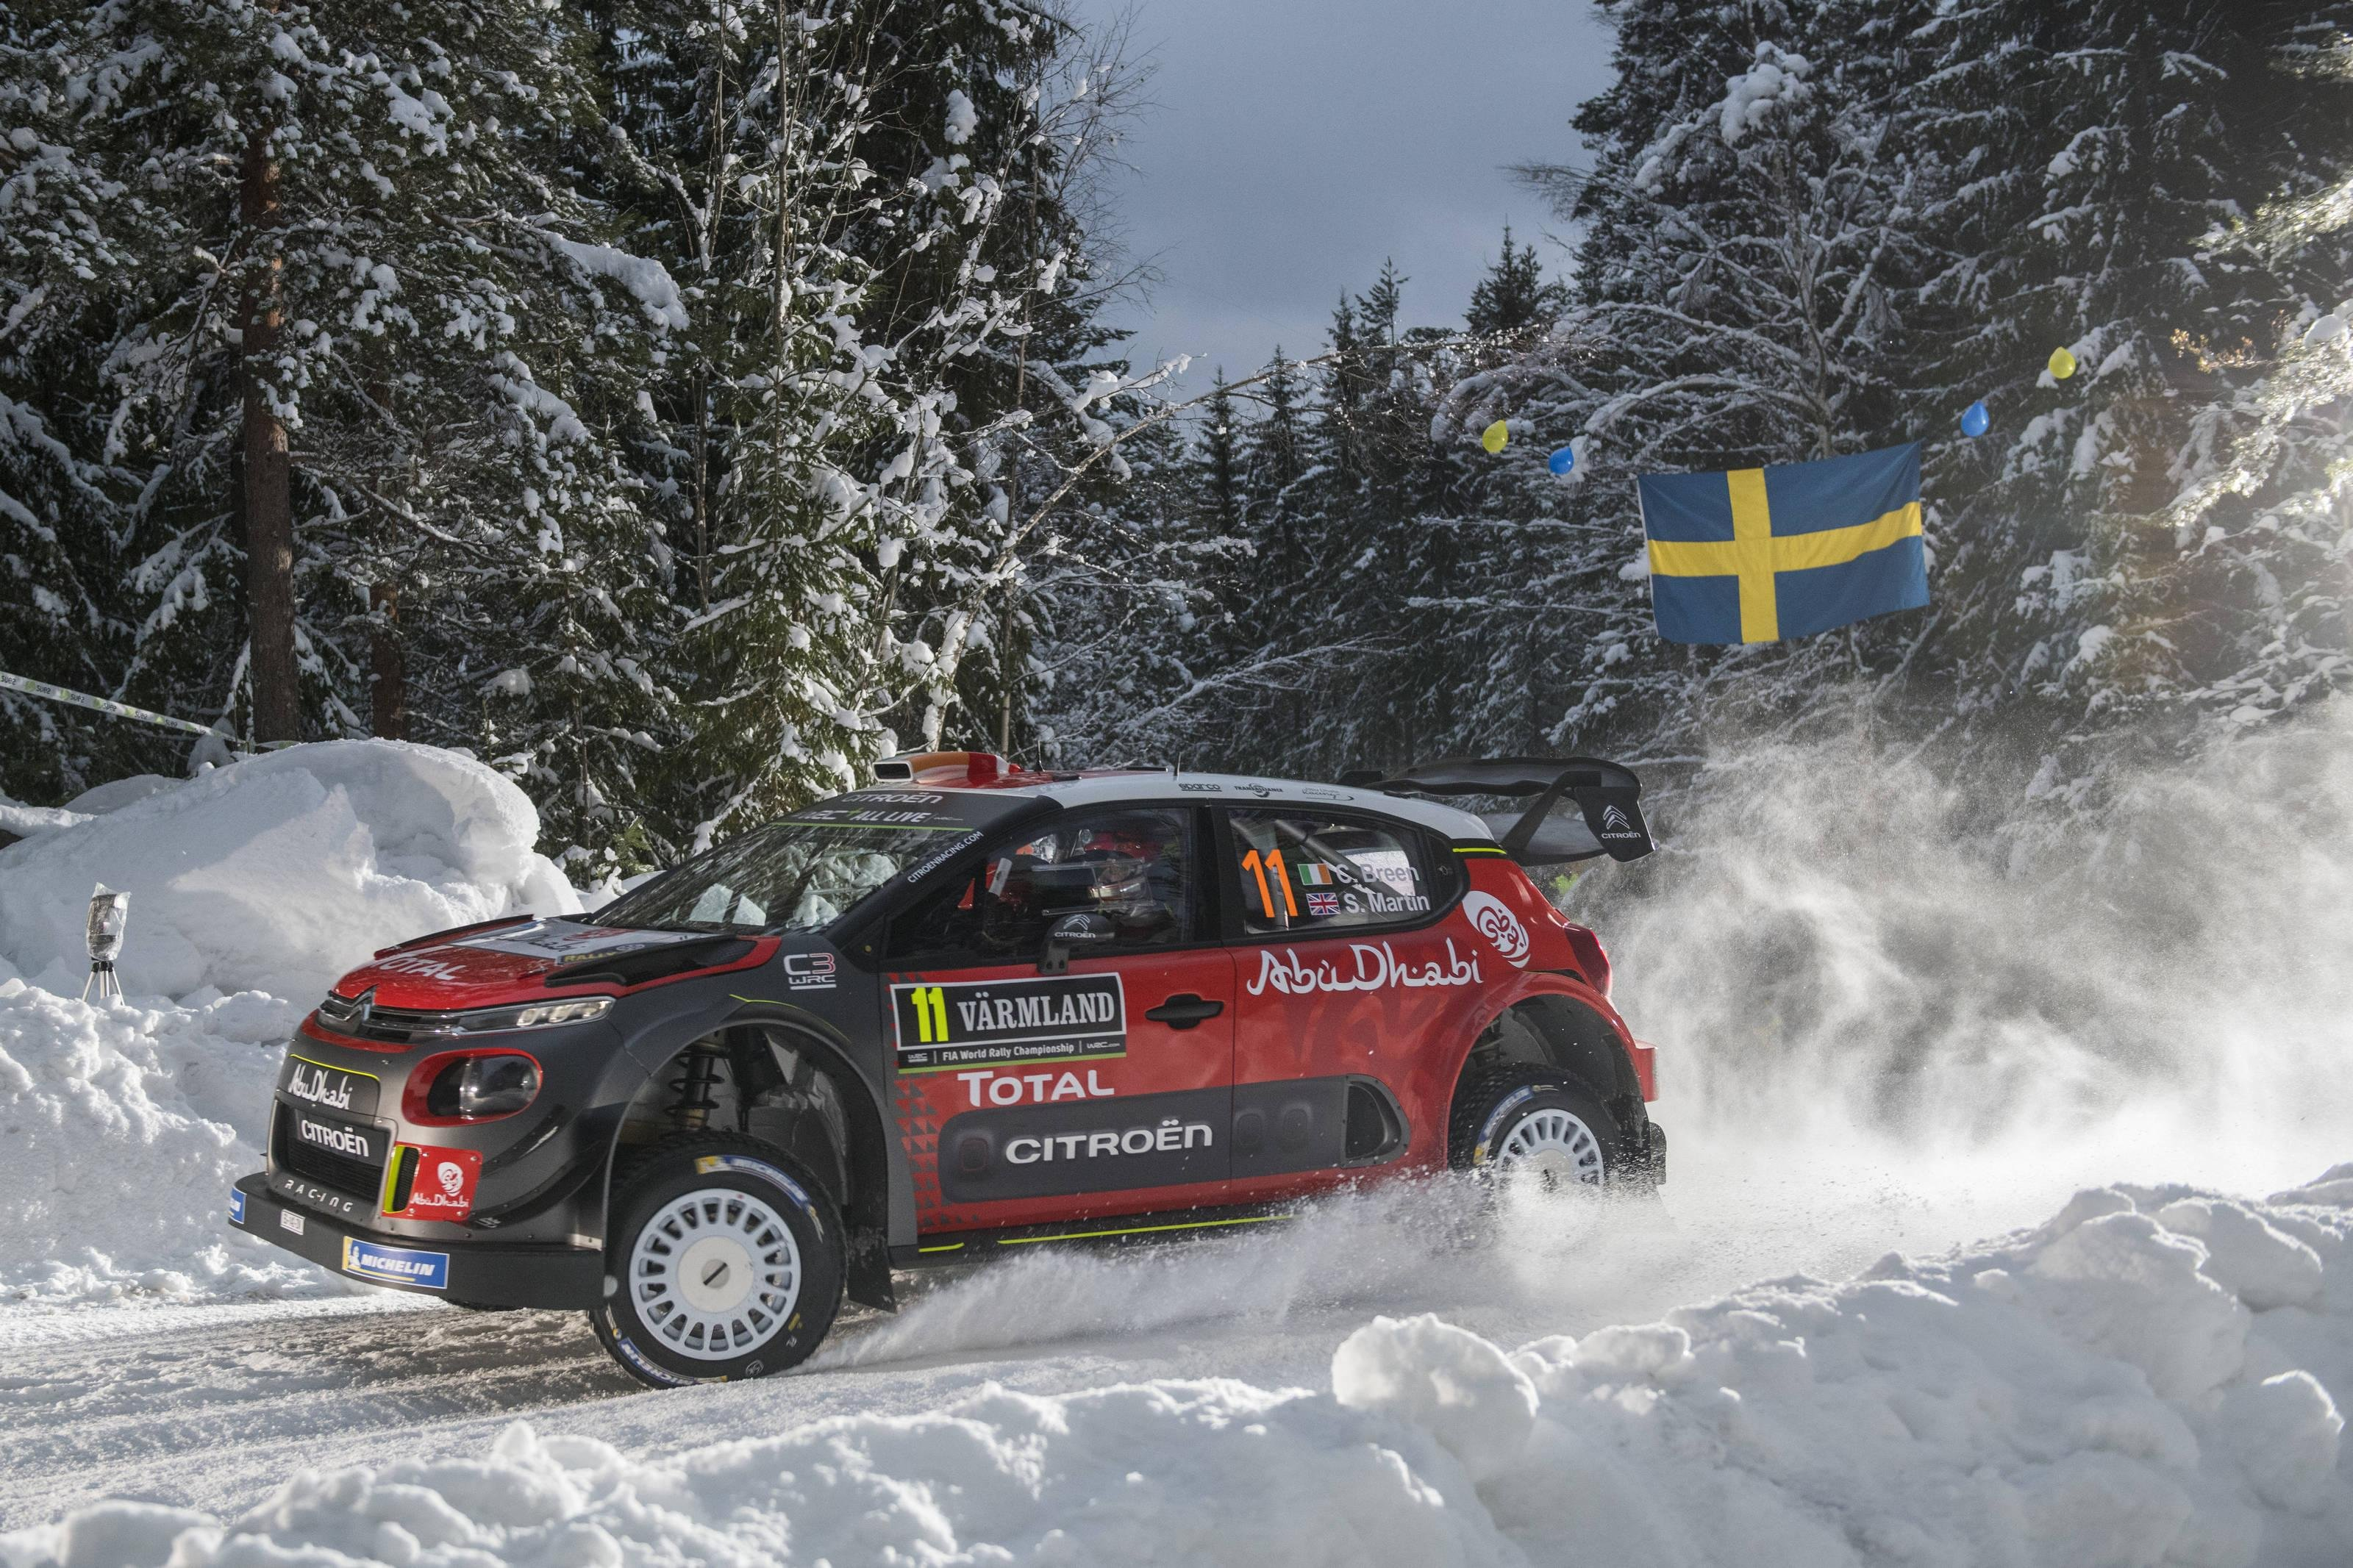 wrc-rally-sweden-2018-craig-breen